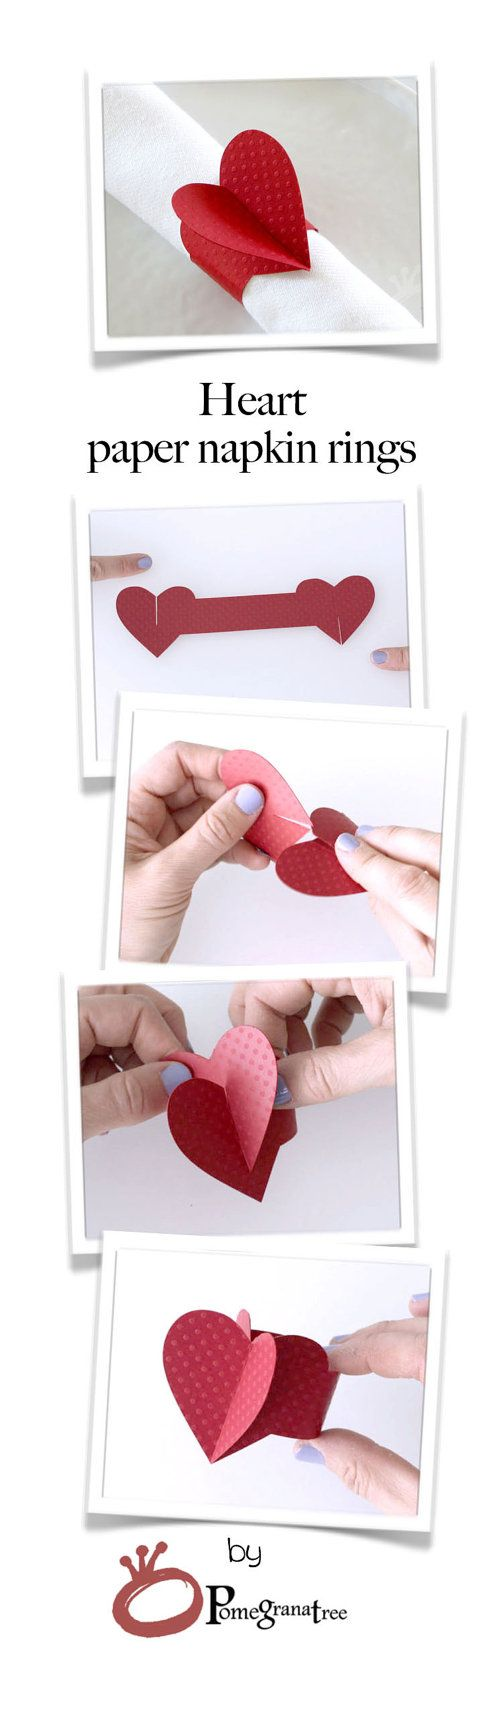 Valentines Day Decor, Red Heart Paper Napkin Rings, Party Decorations, Wedding Decor, Romantic Table Decor, Red Napkin Rings Set of 4 HTD01  These napkin rings are a beautiful added touch for your special occasion and perfect for decorating any party table.  These HEART shaped napkin rings are cut out of premium heavy paper, with delicate dots texture. Napkin rings are sold in sets of four. Napkin rings are shipped flat. Easy assembly - no glue or tape needed! Size:  Flat: 7.